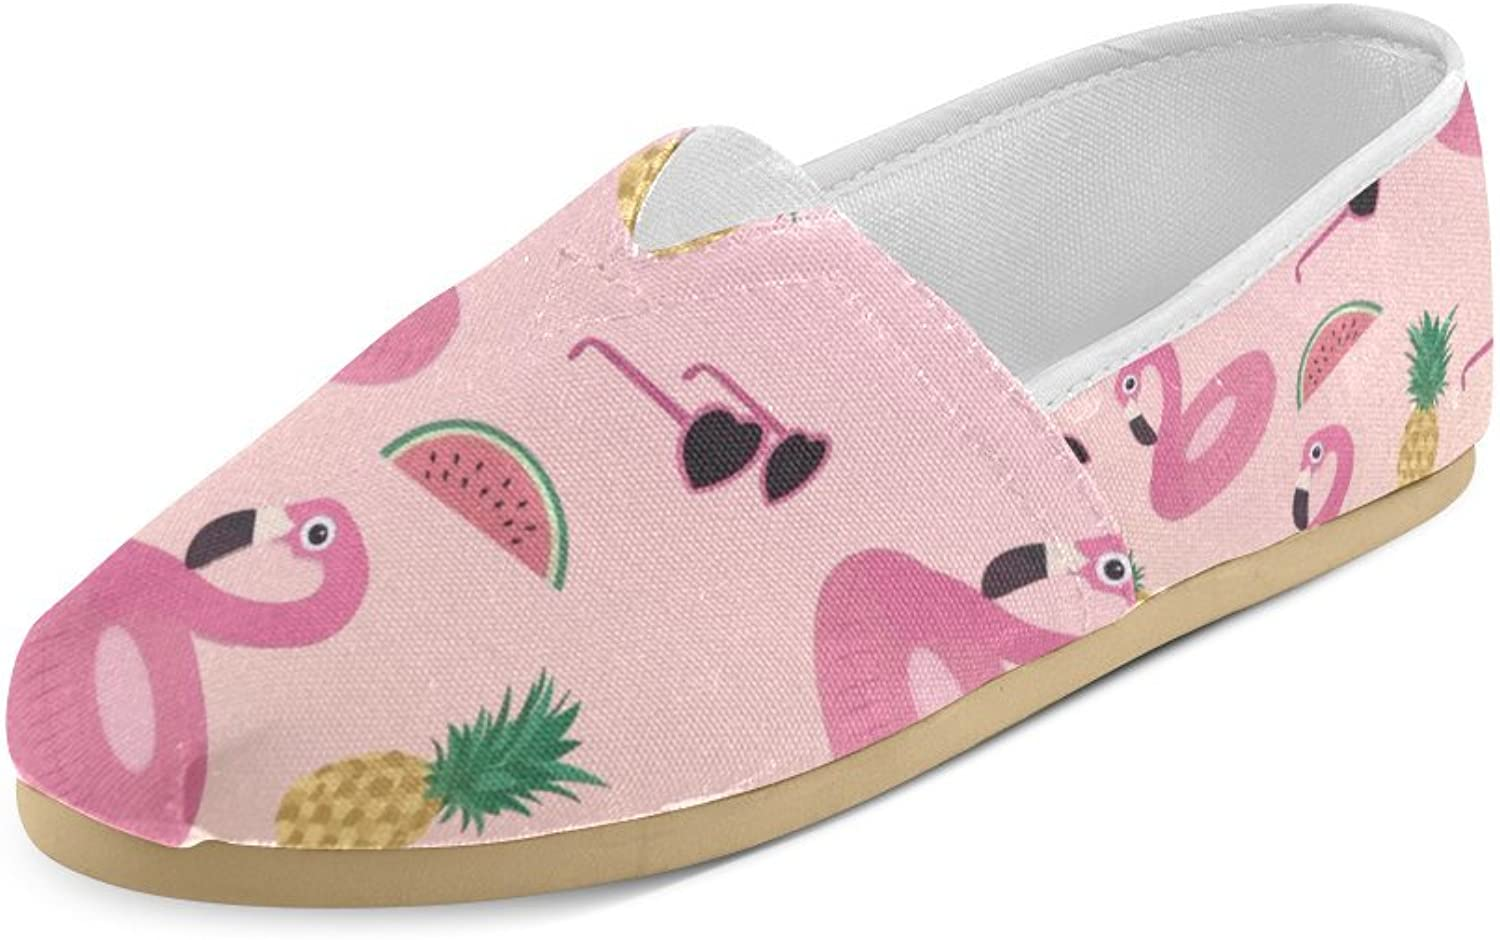 HUANGDAISY Unisex shoes Pink Flamingos Swim Pineapple Watermelon Glasses Casual Canvas Loafers for Bia Kids Girl Or Men